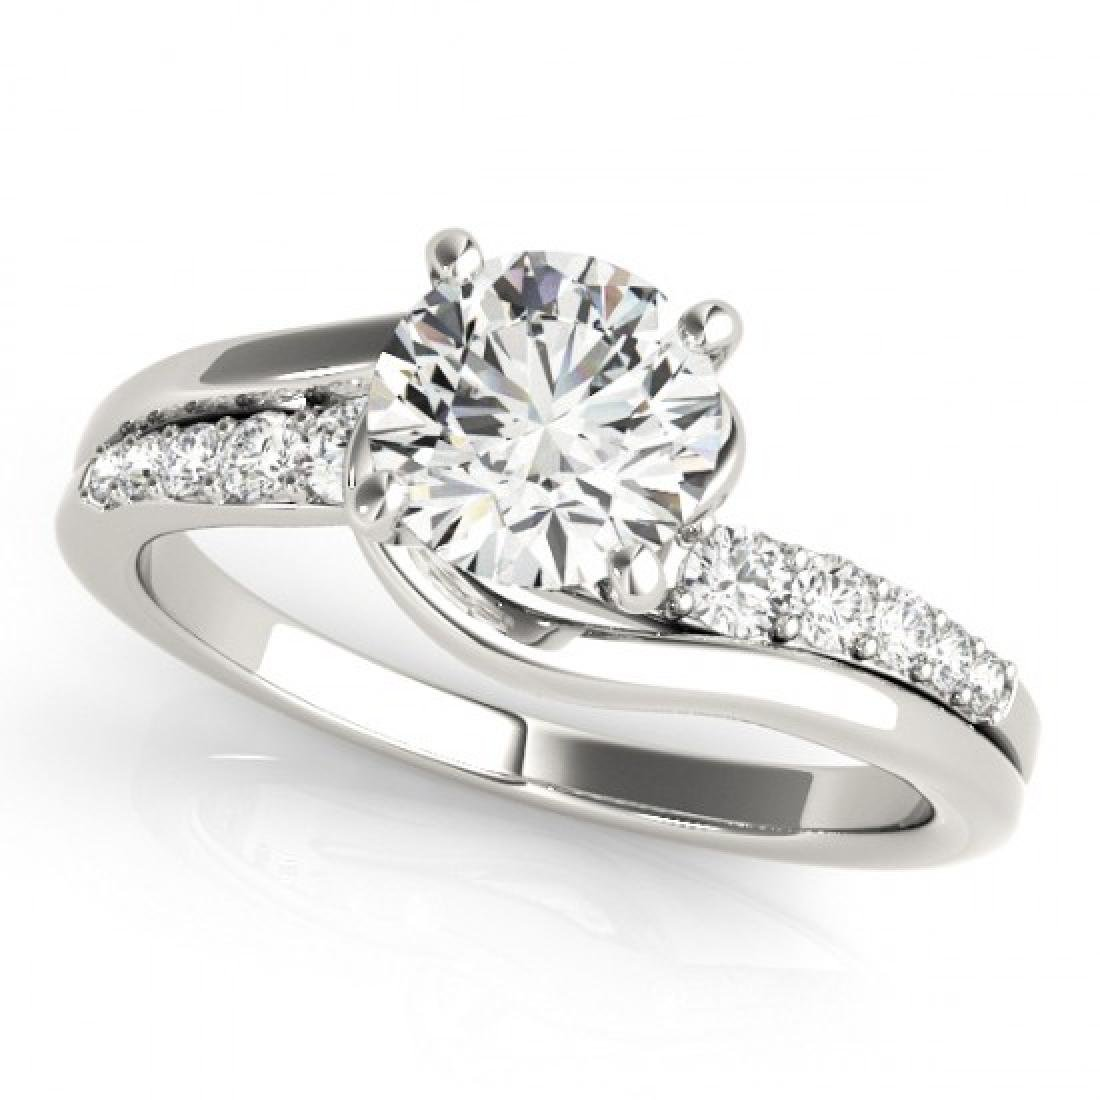 1.31 CTW Certified VS/SI Diamond Bypass Solitaire Ring